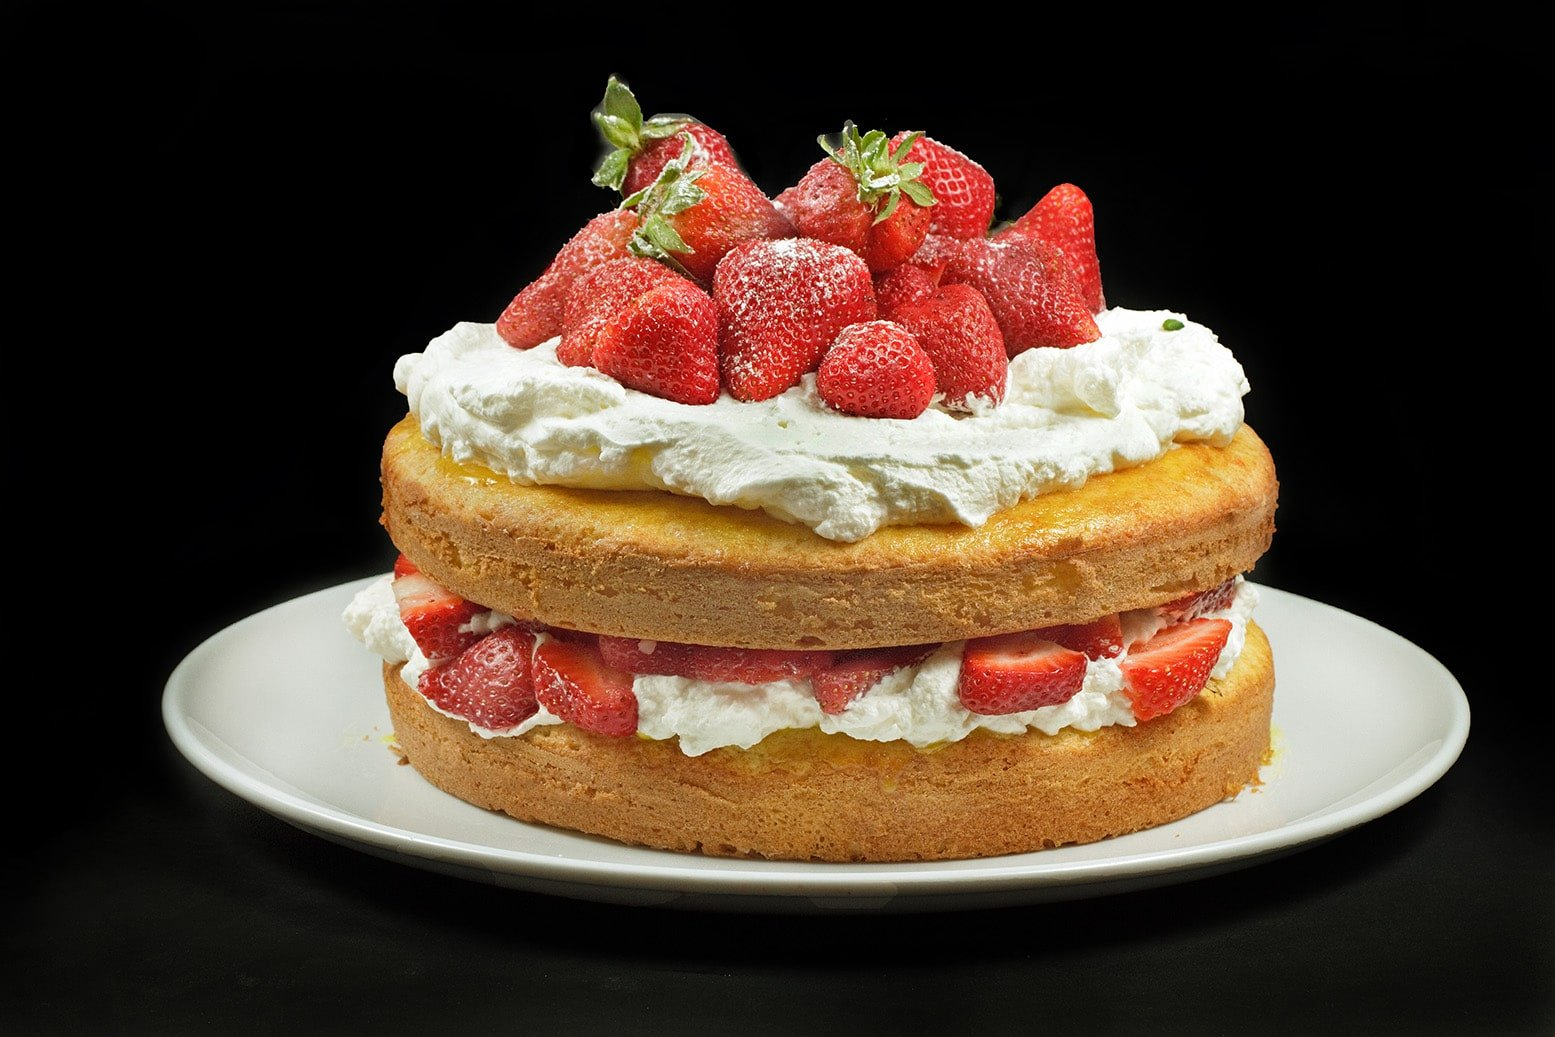 cream elves strawberries and cream pan cake s strawberries and cream ...